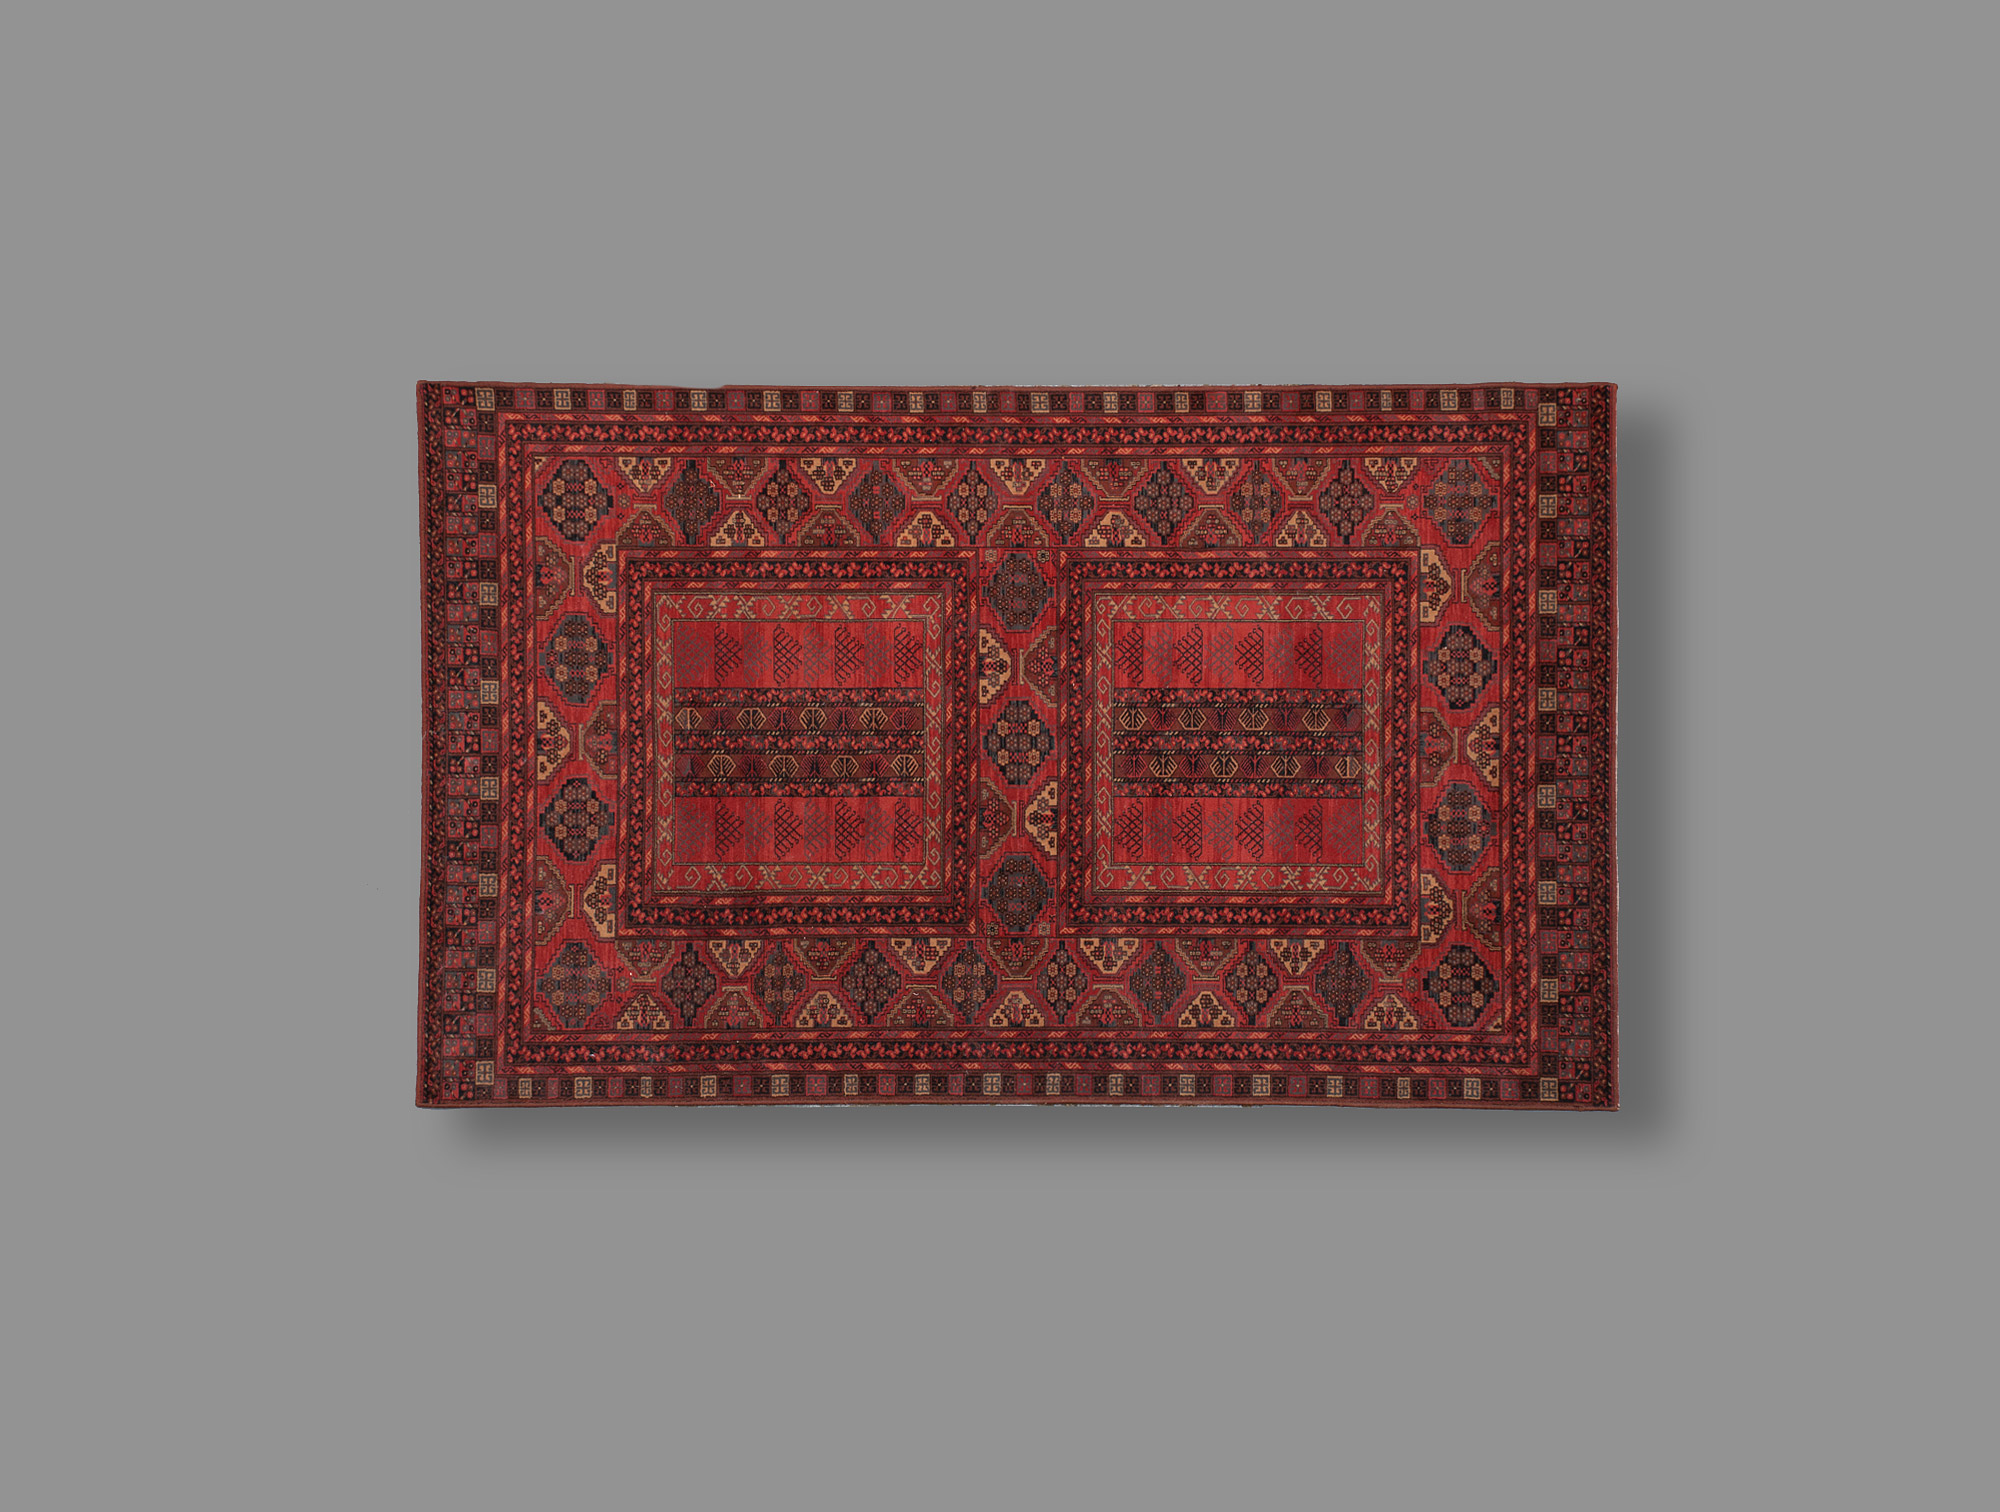 tapis d 39 orient soubrier louer mobiliers tapis xxe. Black Bedroom Furniture Sets. Home Design Ideas